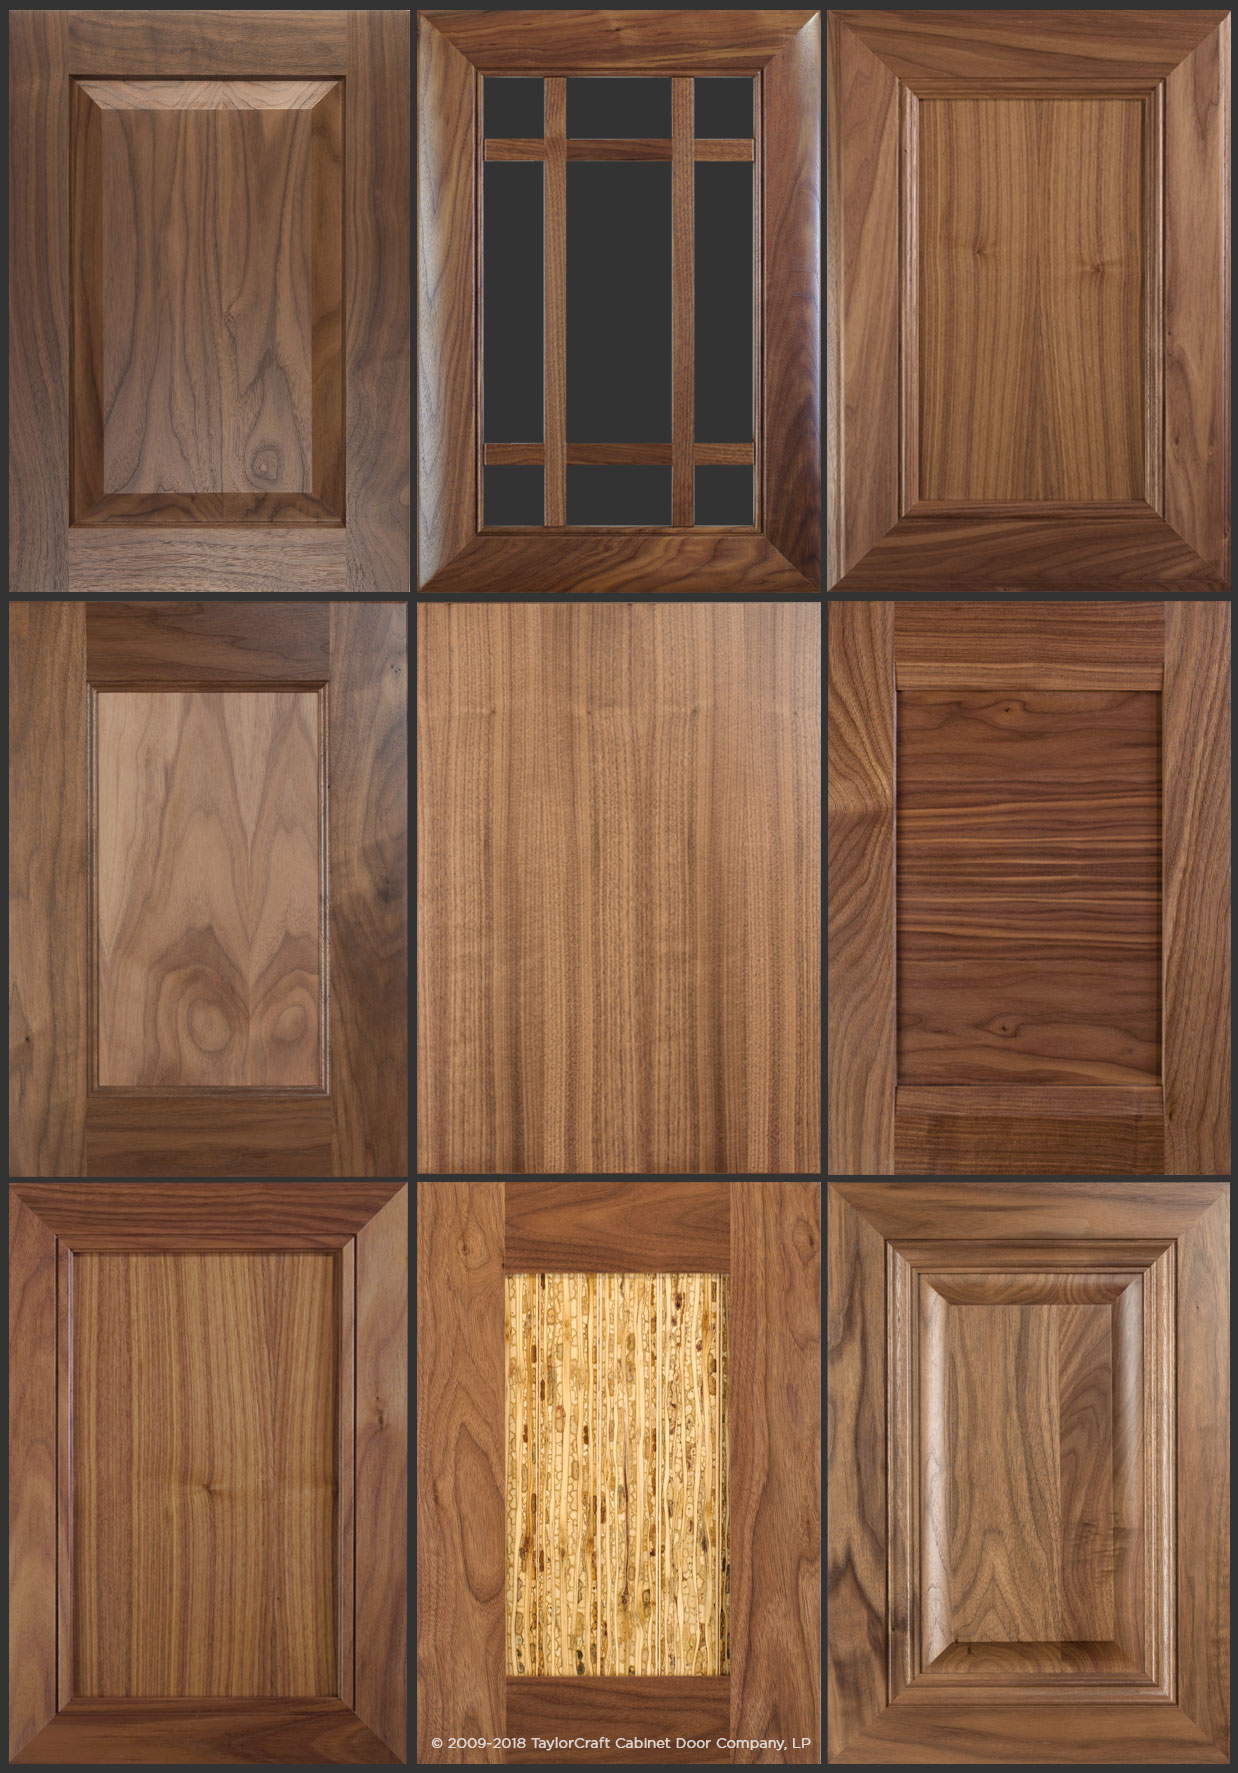 Walnut Cabinet Doors and Kitchen Cabinets